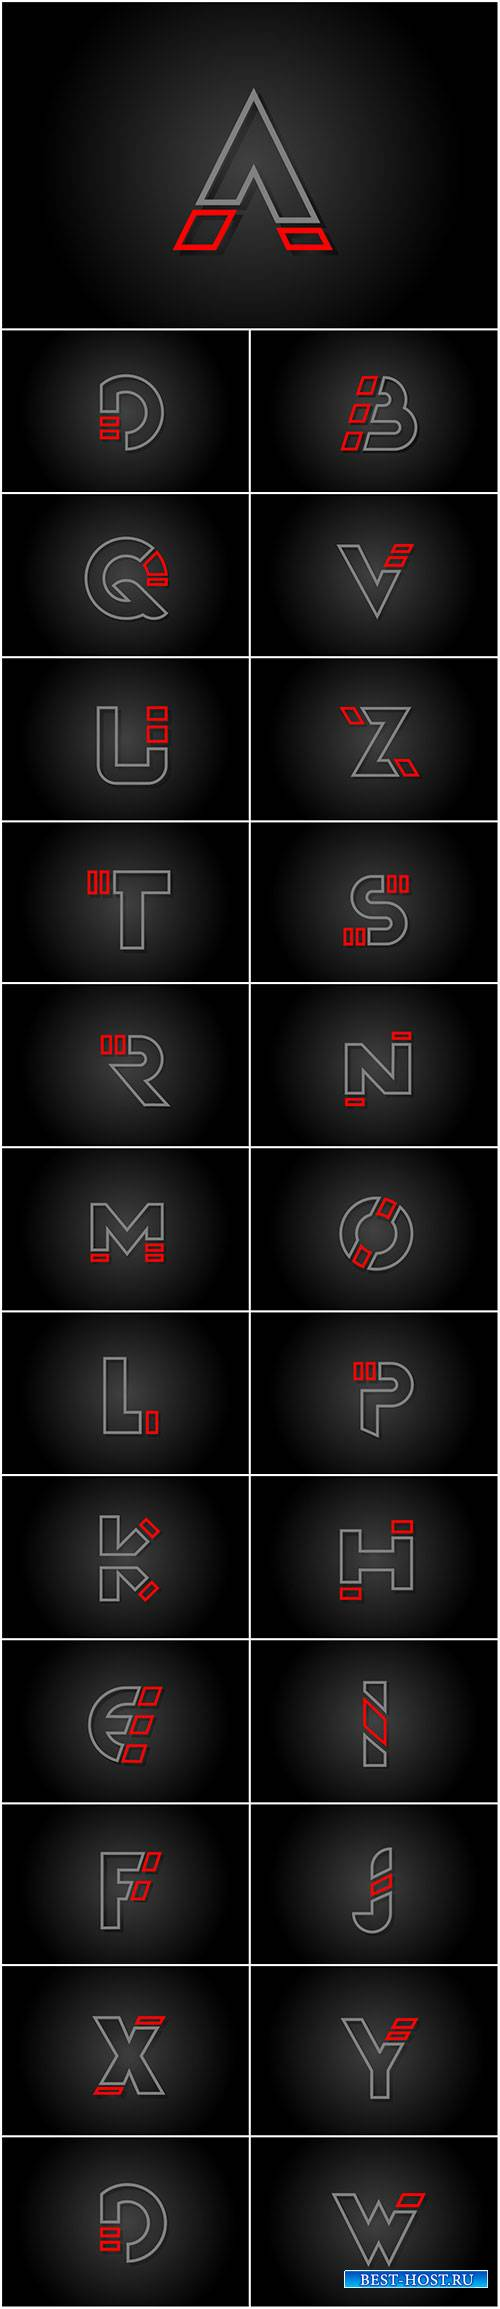 Alphabet line letter red black for company logo icon design